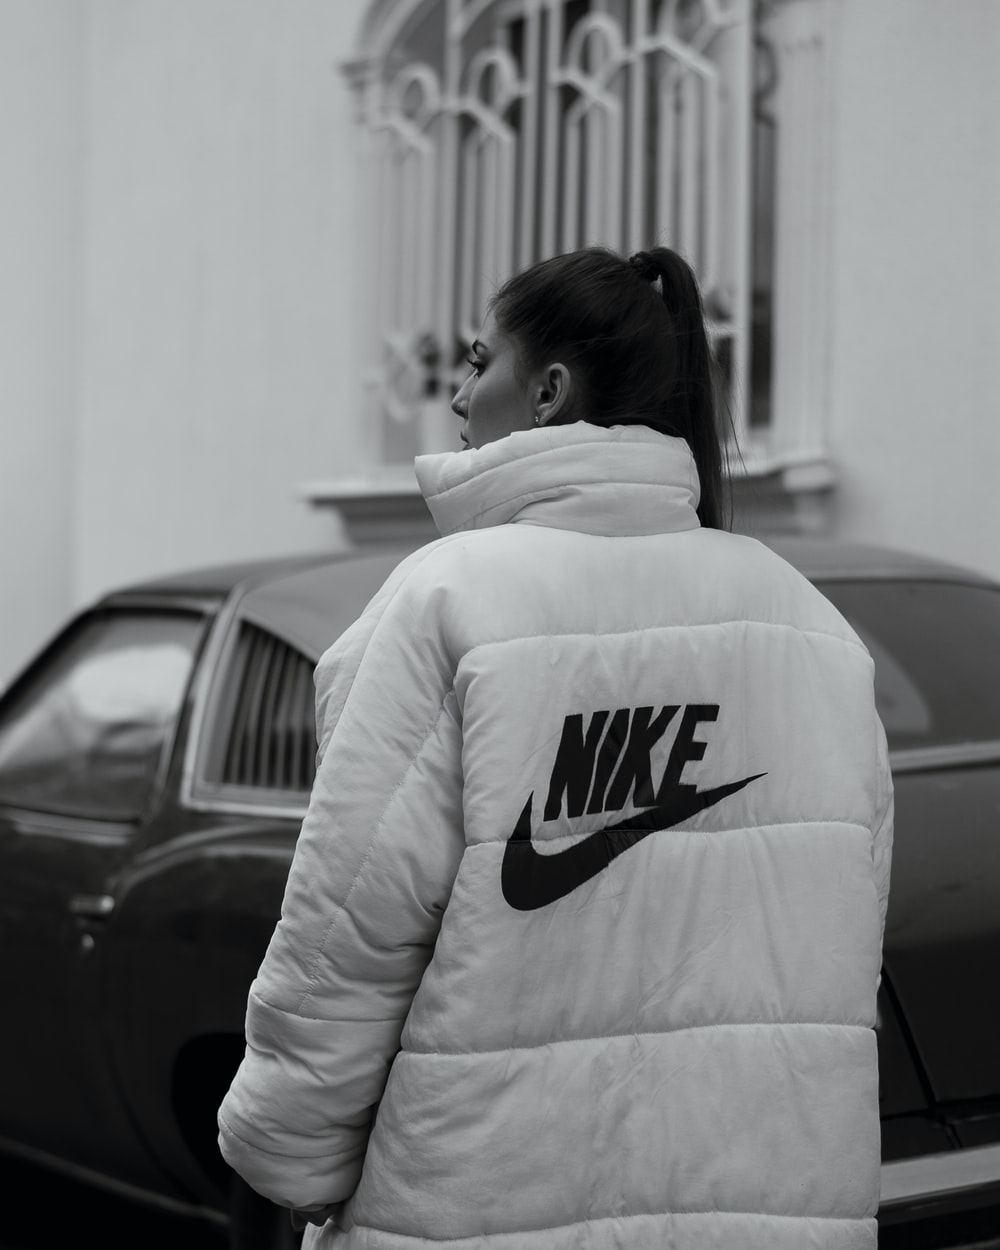 woman in white and black adidas hoodie standing near black car